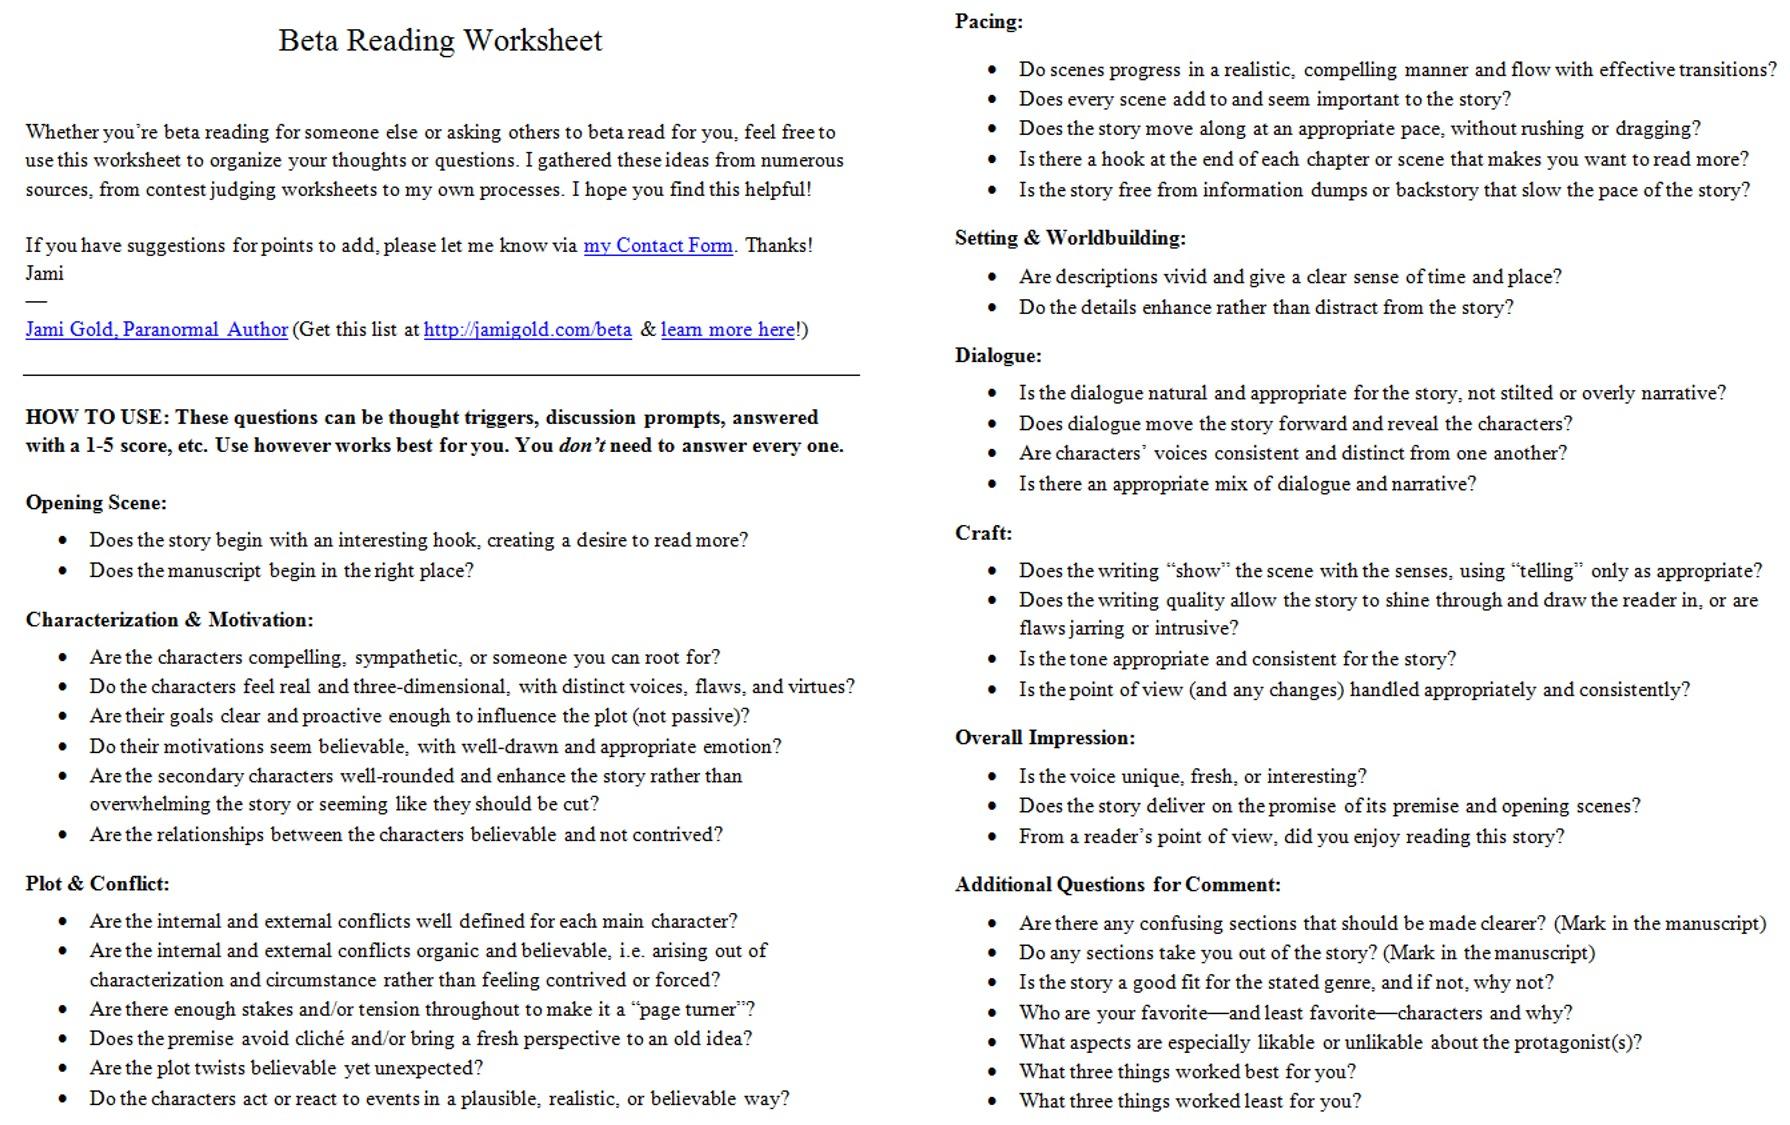 Weirdmailus  Seductive Worksheets For Writers  Jami Gold Paranormal Author With Extraordinary Screen Shot Of The Twopage Beta Reading Worksheet With Enchanting Contractions Exercises Worksheets Also Letter M Phonics Worksheets In Addition Phonics Worksheets For Grade  And Super Teacher Worksheets Addition And Subtraction As Well As Worksheet Of Animals Additionally Worksheets For Kids Free From Jamigoldcom With Weirdmailus  Extraordinary Worksheets For Writers  Jami Gold Paranormal Author With Enchanting Screen Shot Of The Twopage Beta Reading Worksheet And Seductive Contractions Exercises Worksheets Also Letter M Phonics Worksheets In Addition Phonics Worksheets For Grade  From Jamigoldcom